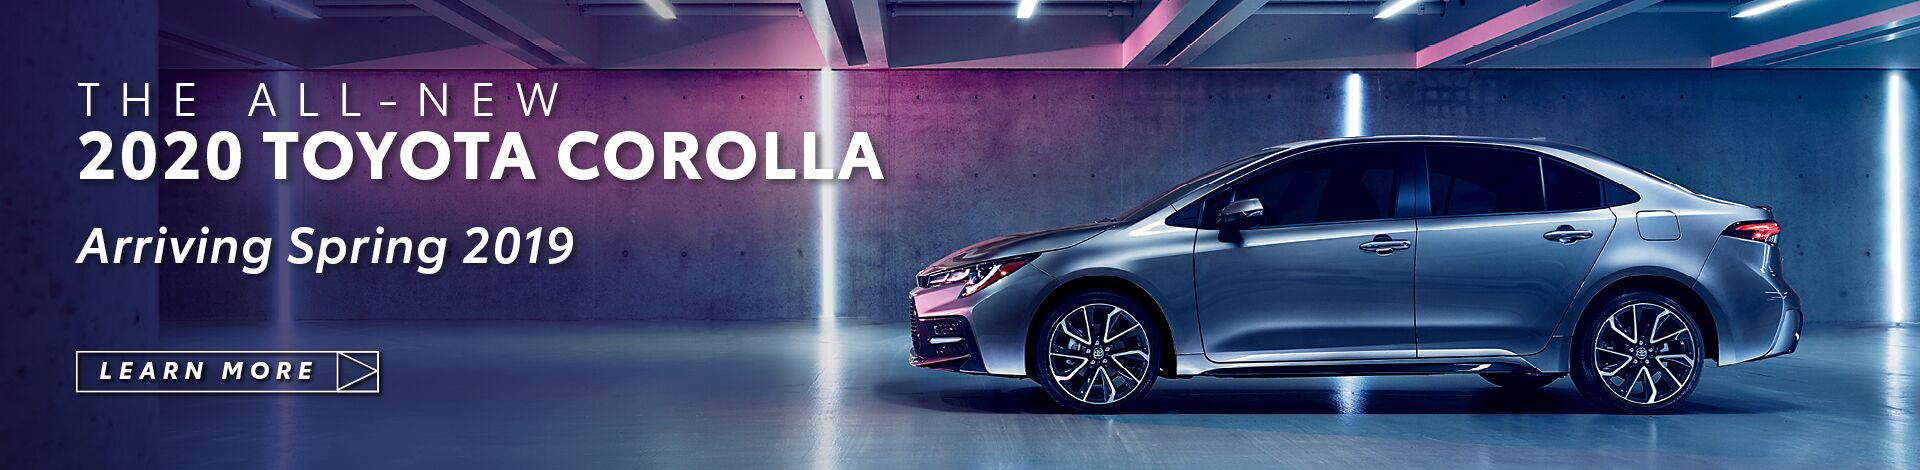 All New 2020 Toyota Corolla